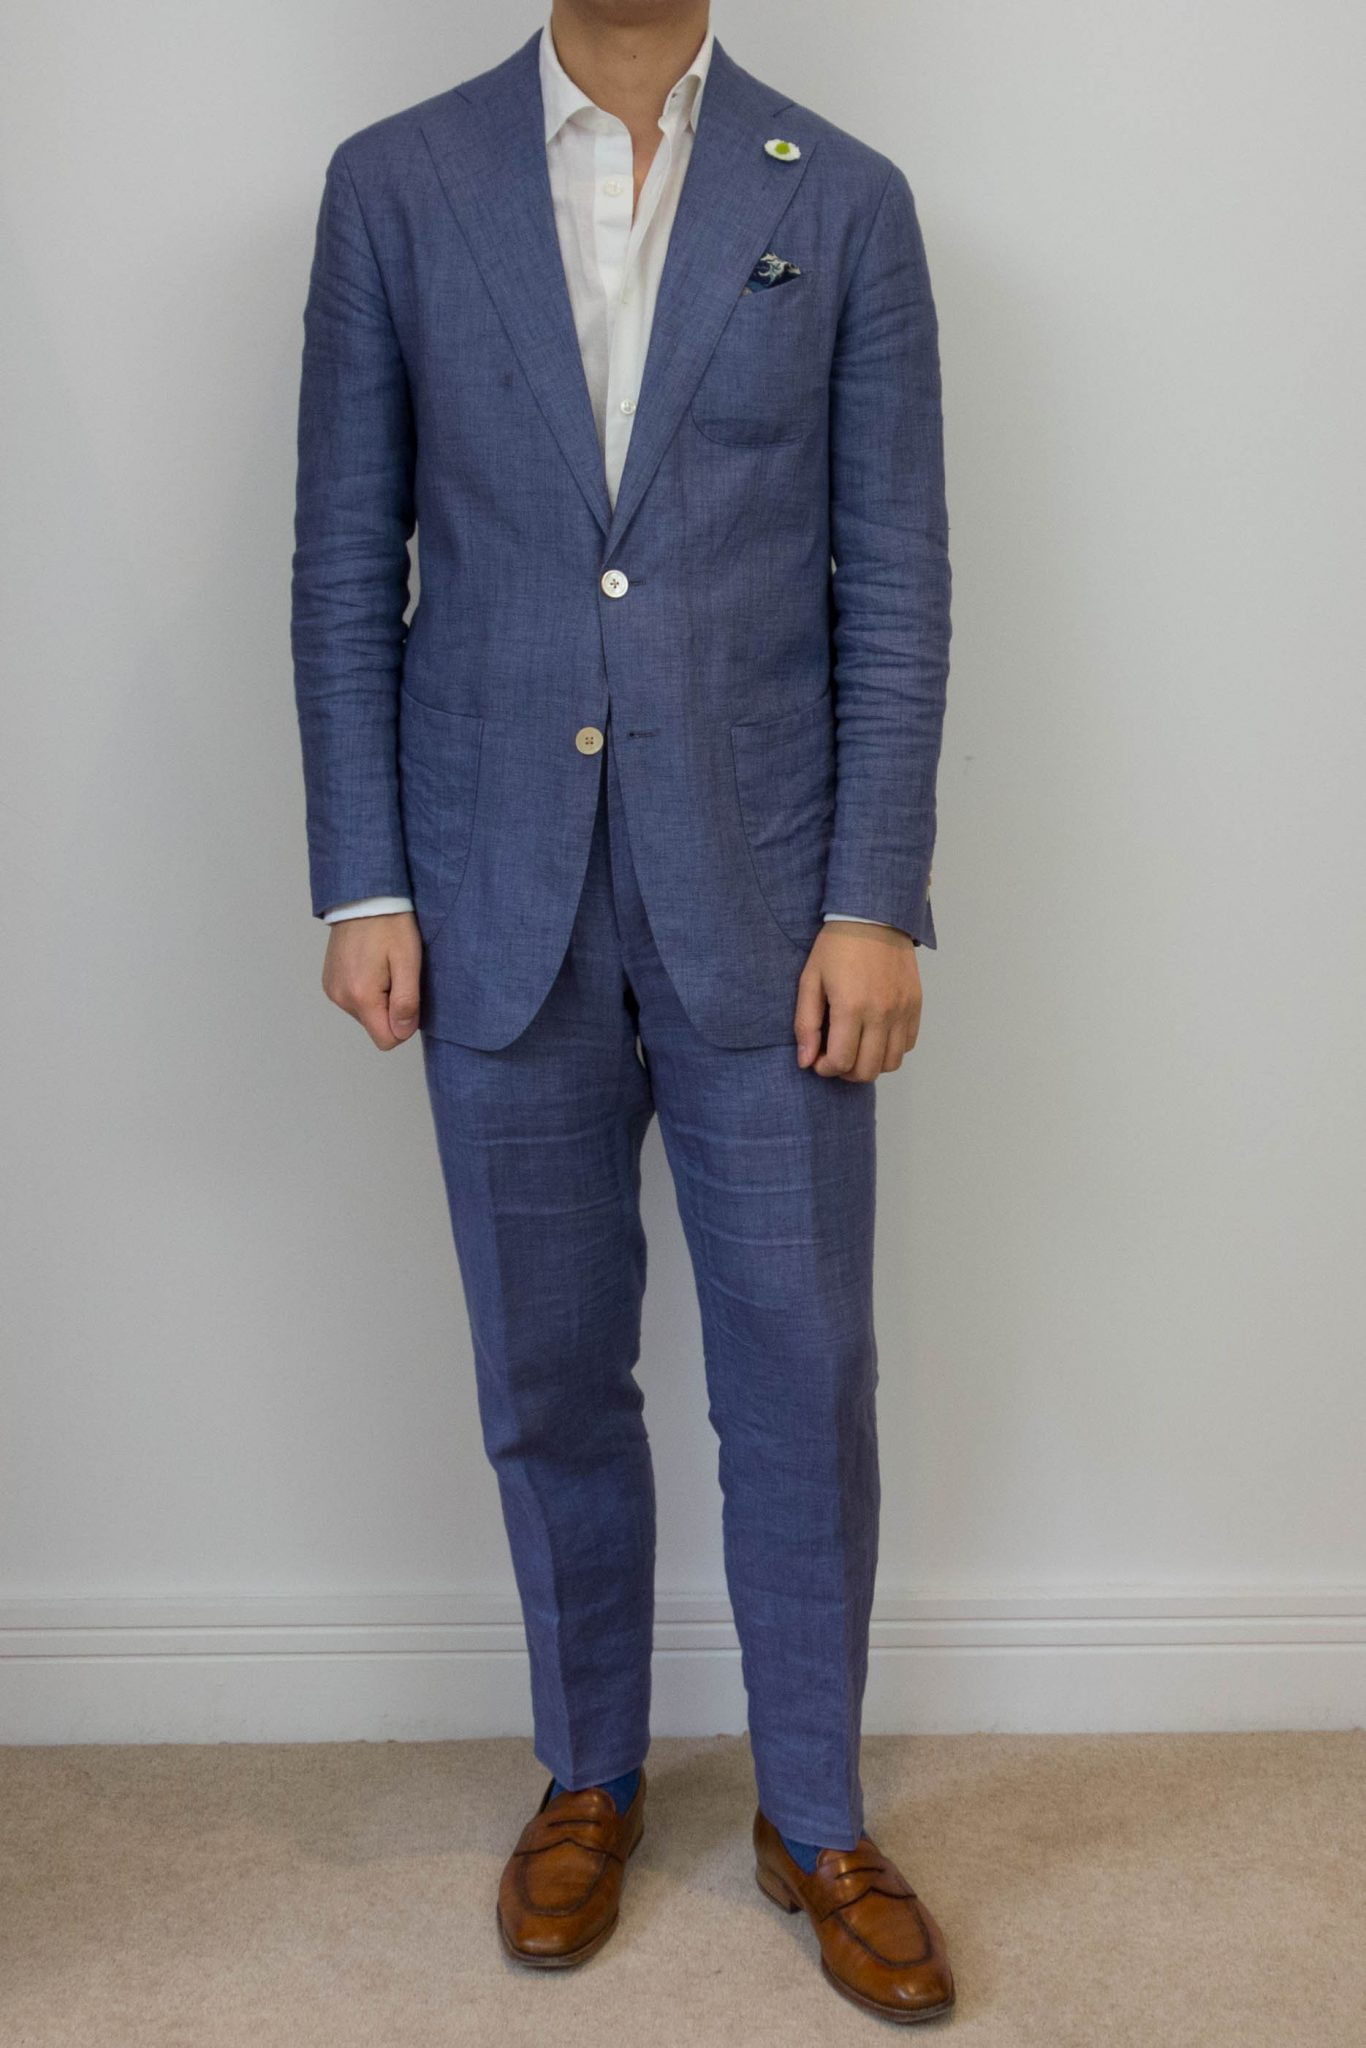 Blue suit, brown shoes – a timeless combination or a mistake?